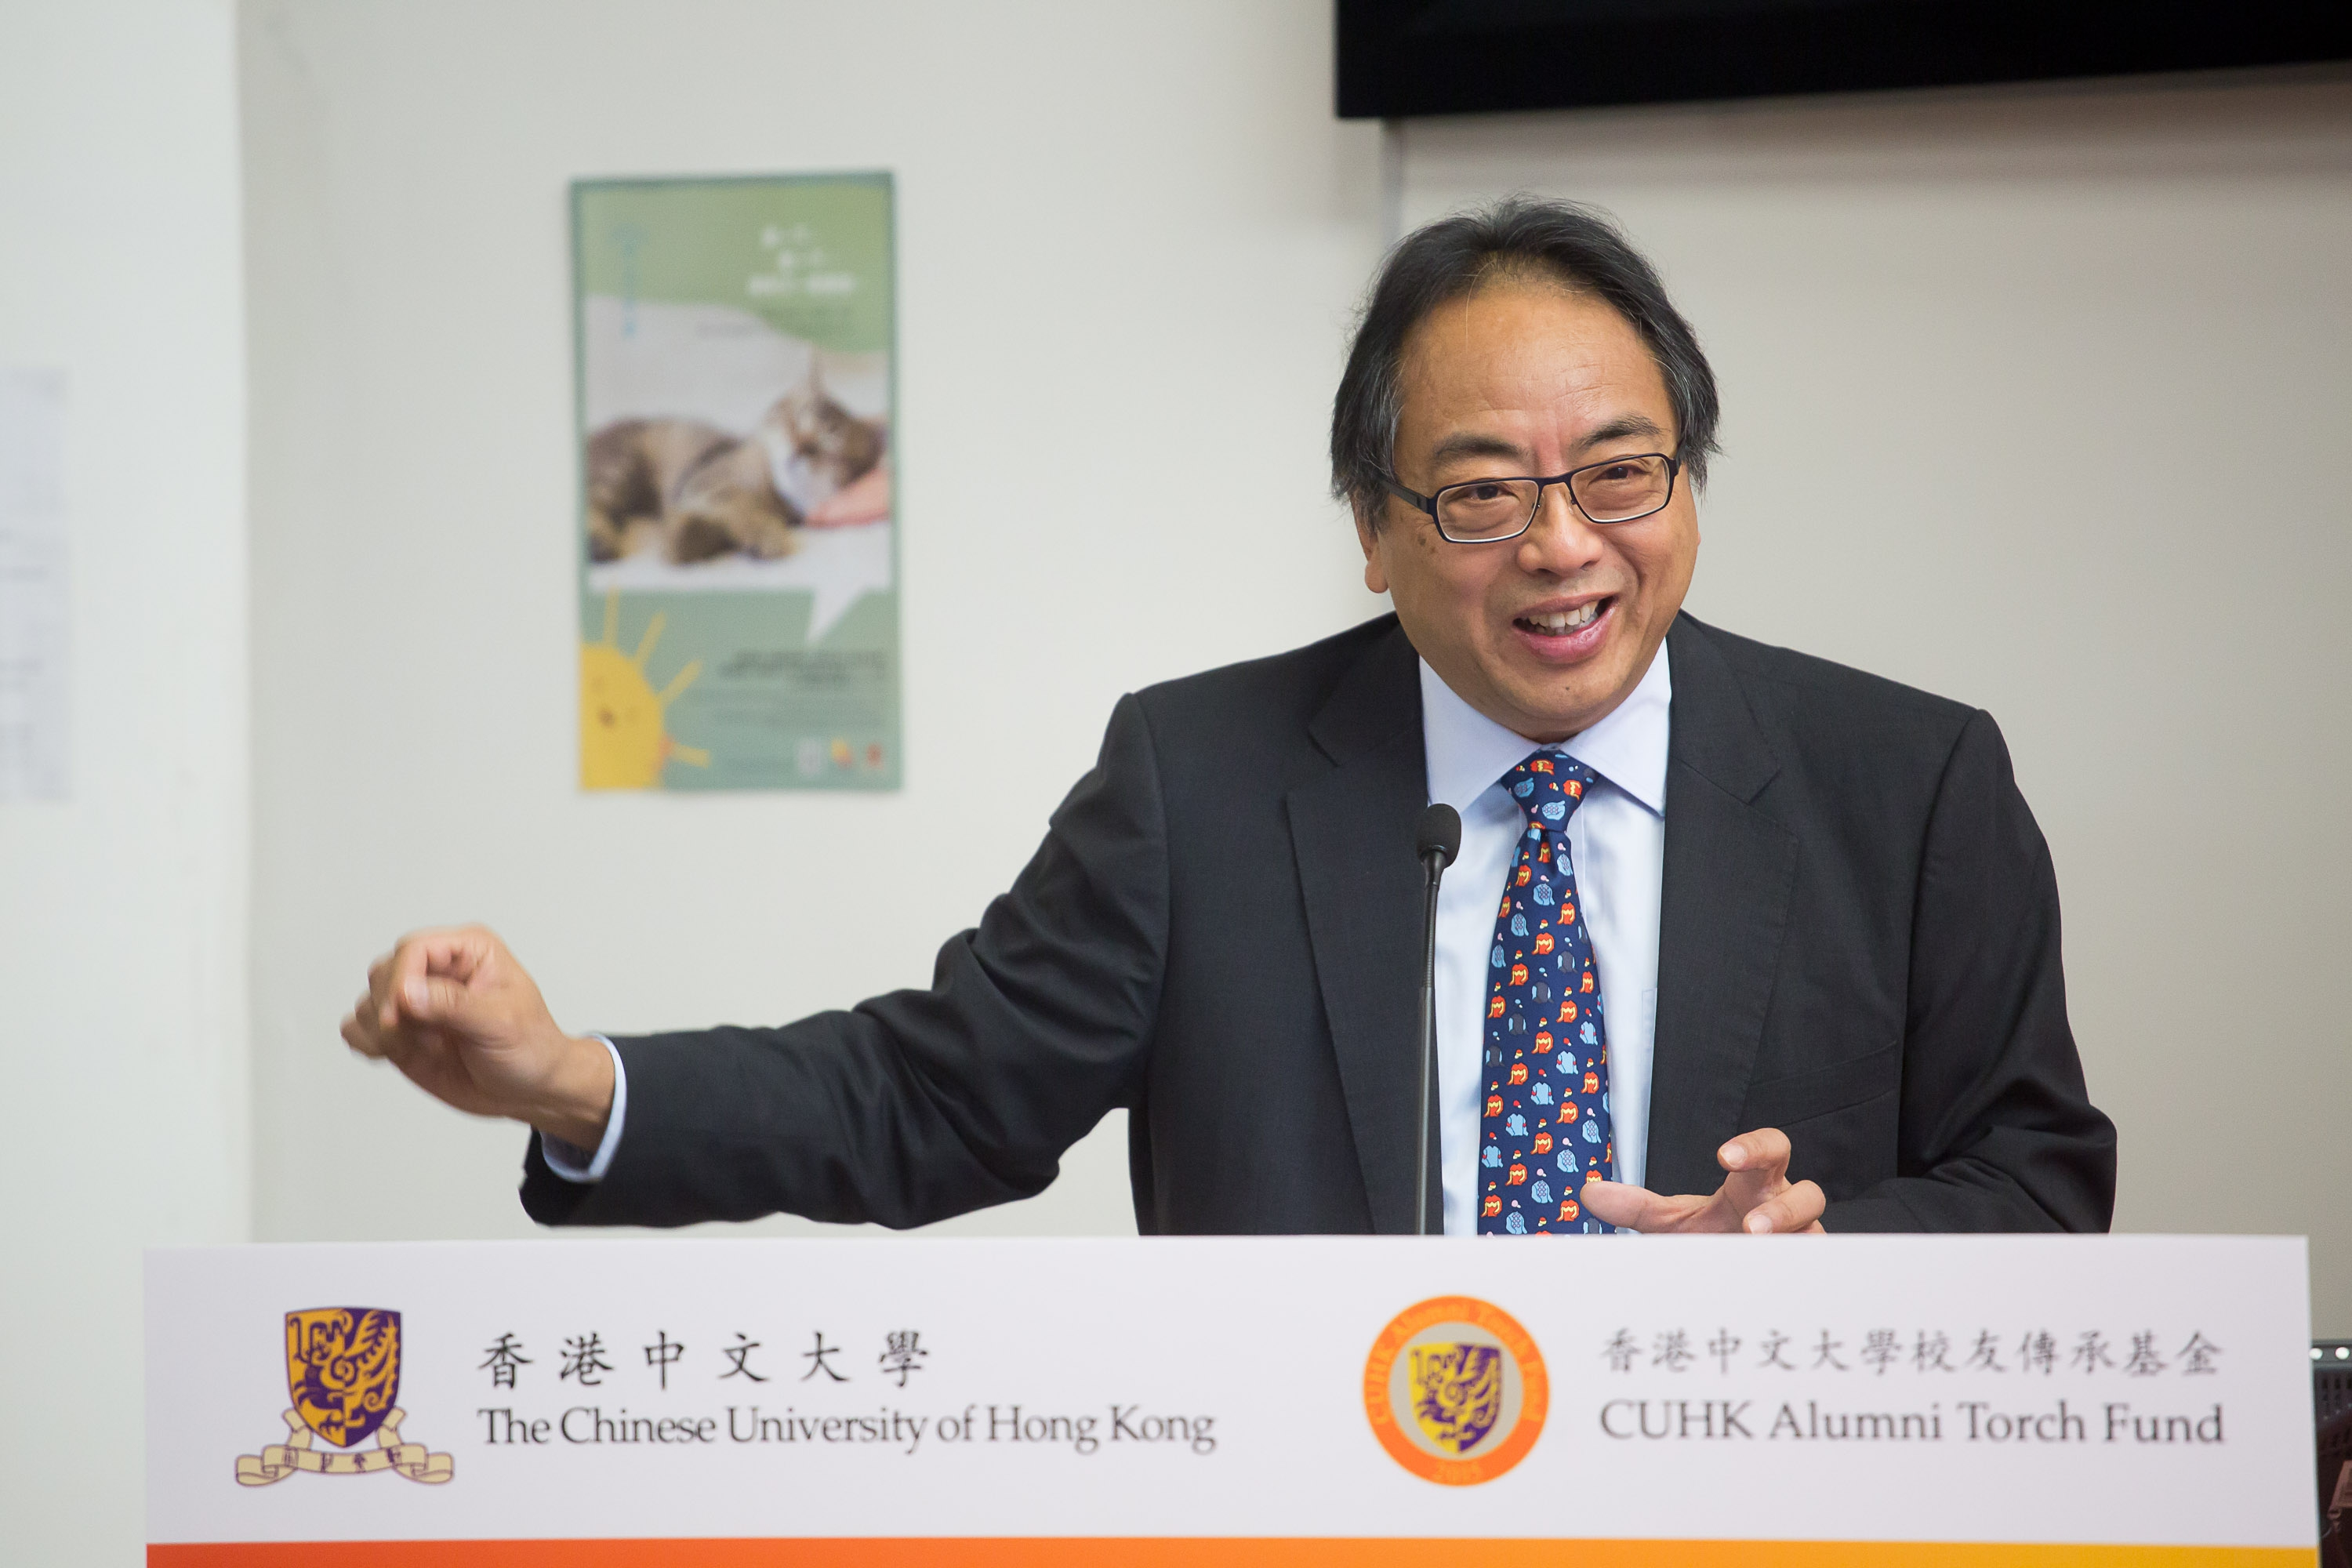 Prof. Lap-chee Tsui, President of the Academy of Sciences of Hong Kong delivers a keynote speech.